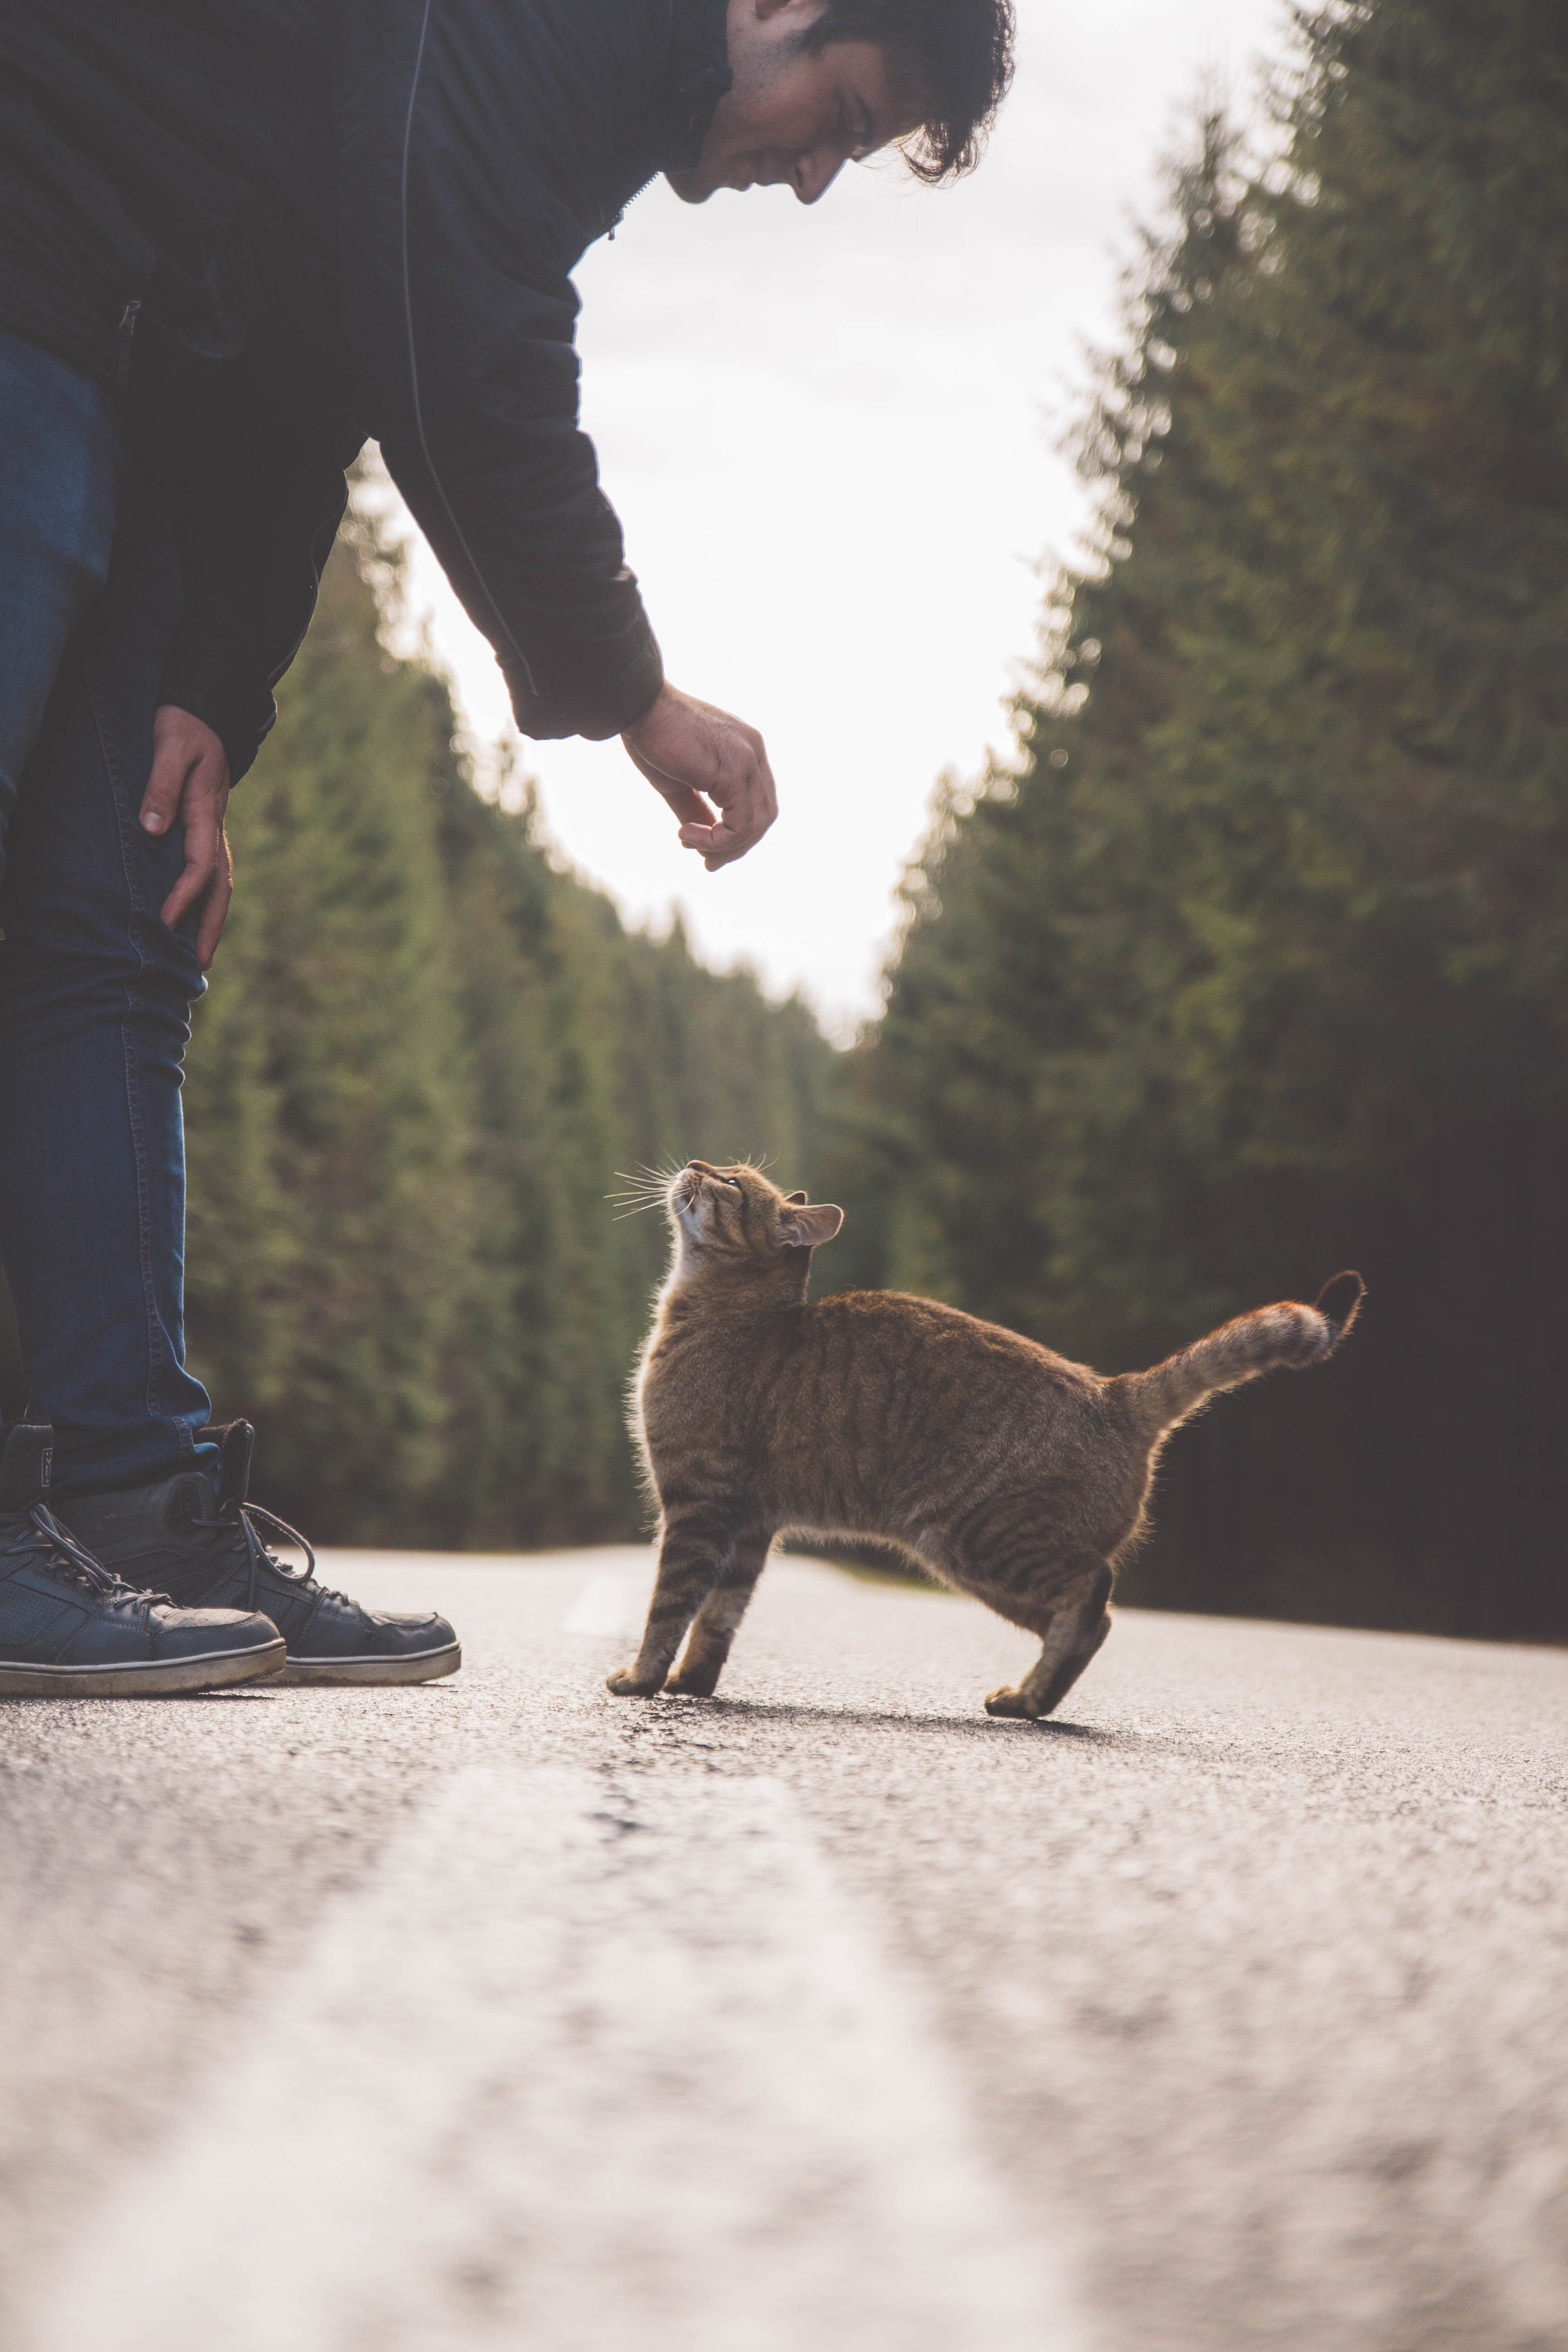 A man with a cat in the road. | Photo: Pexels